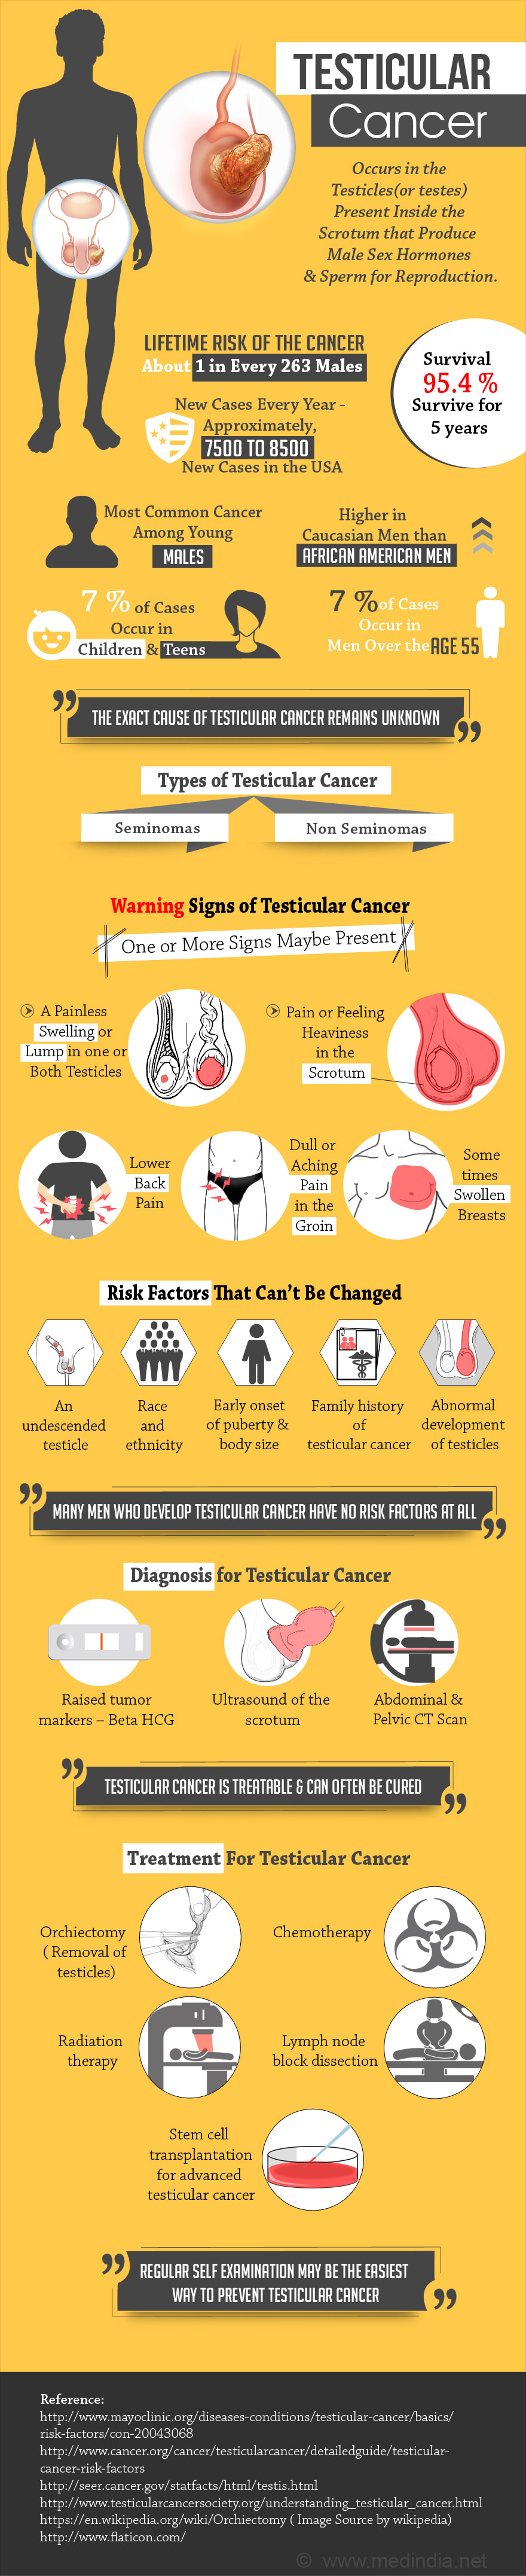 Testicular Cancer - Infographic